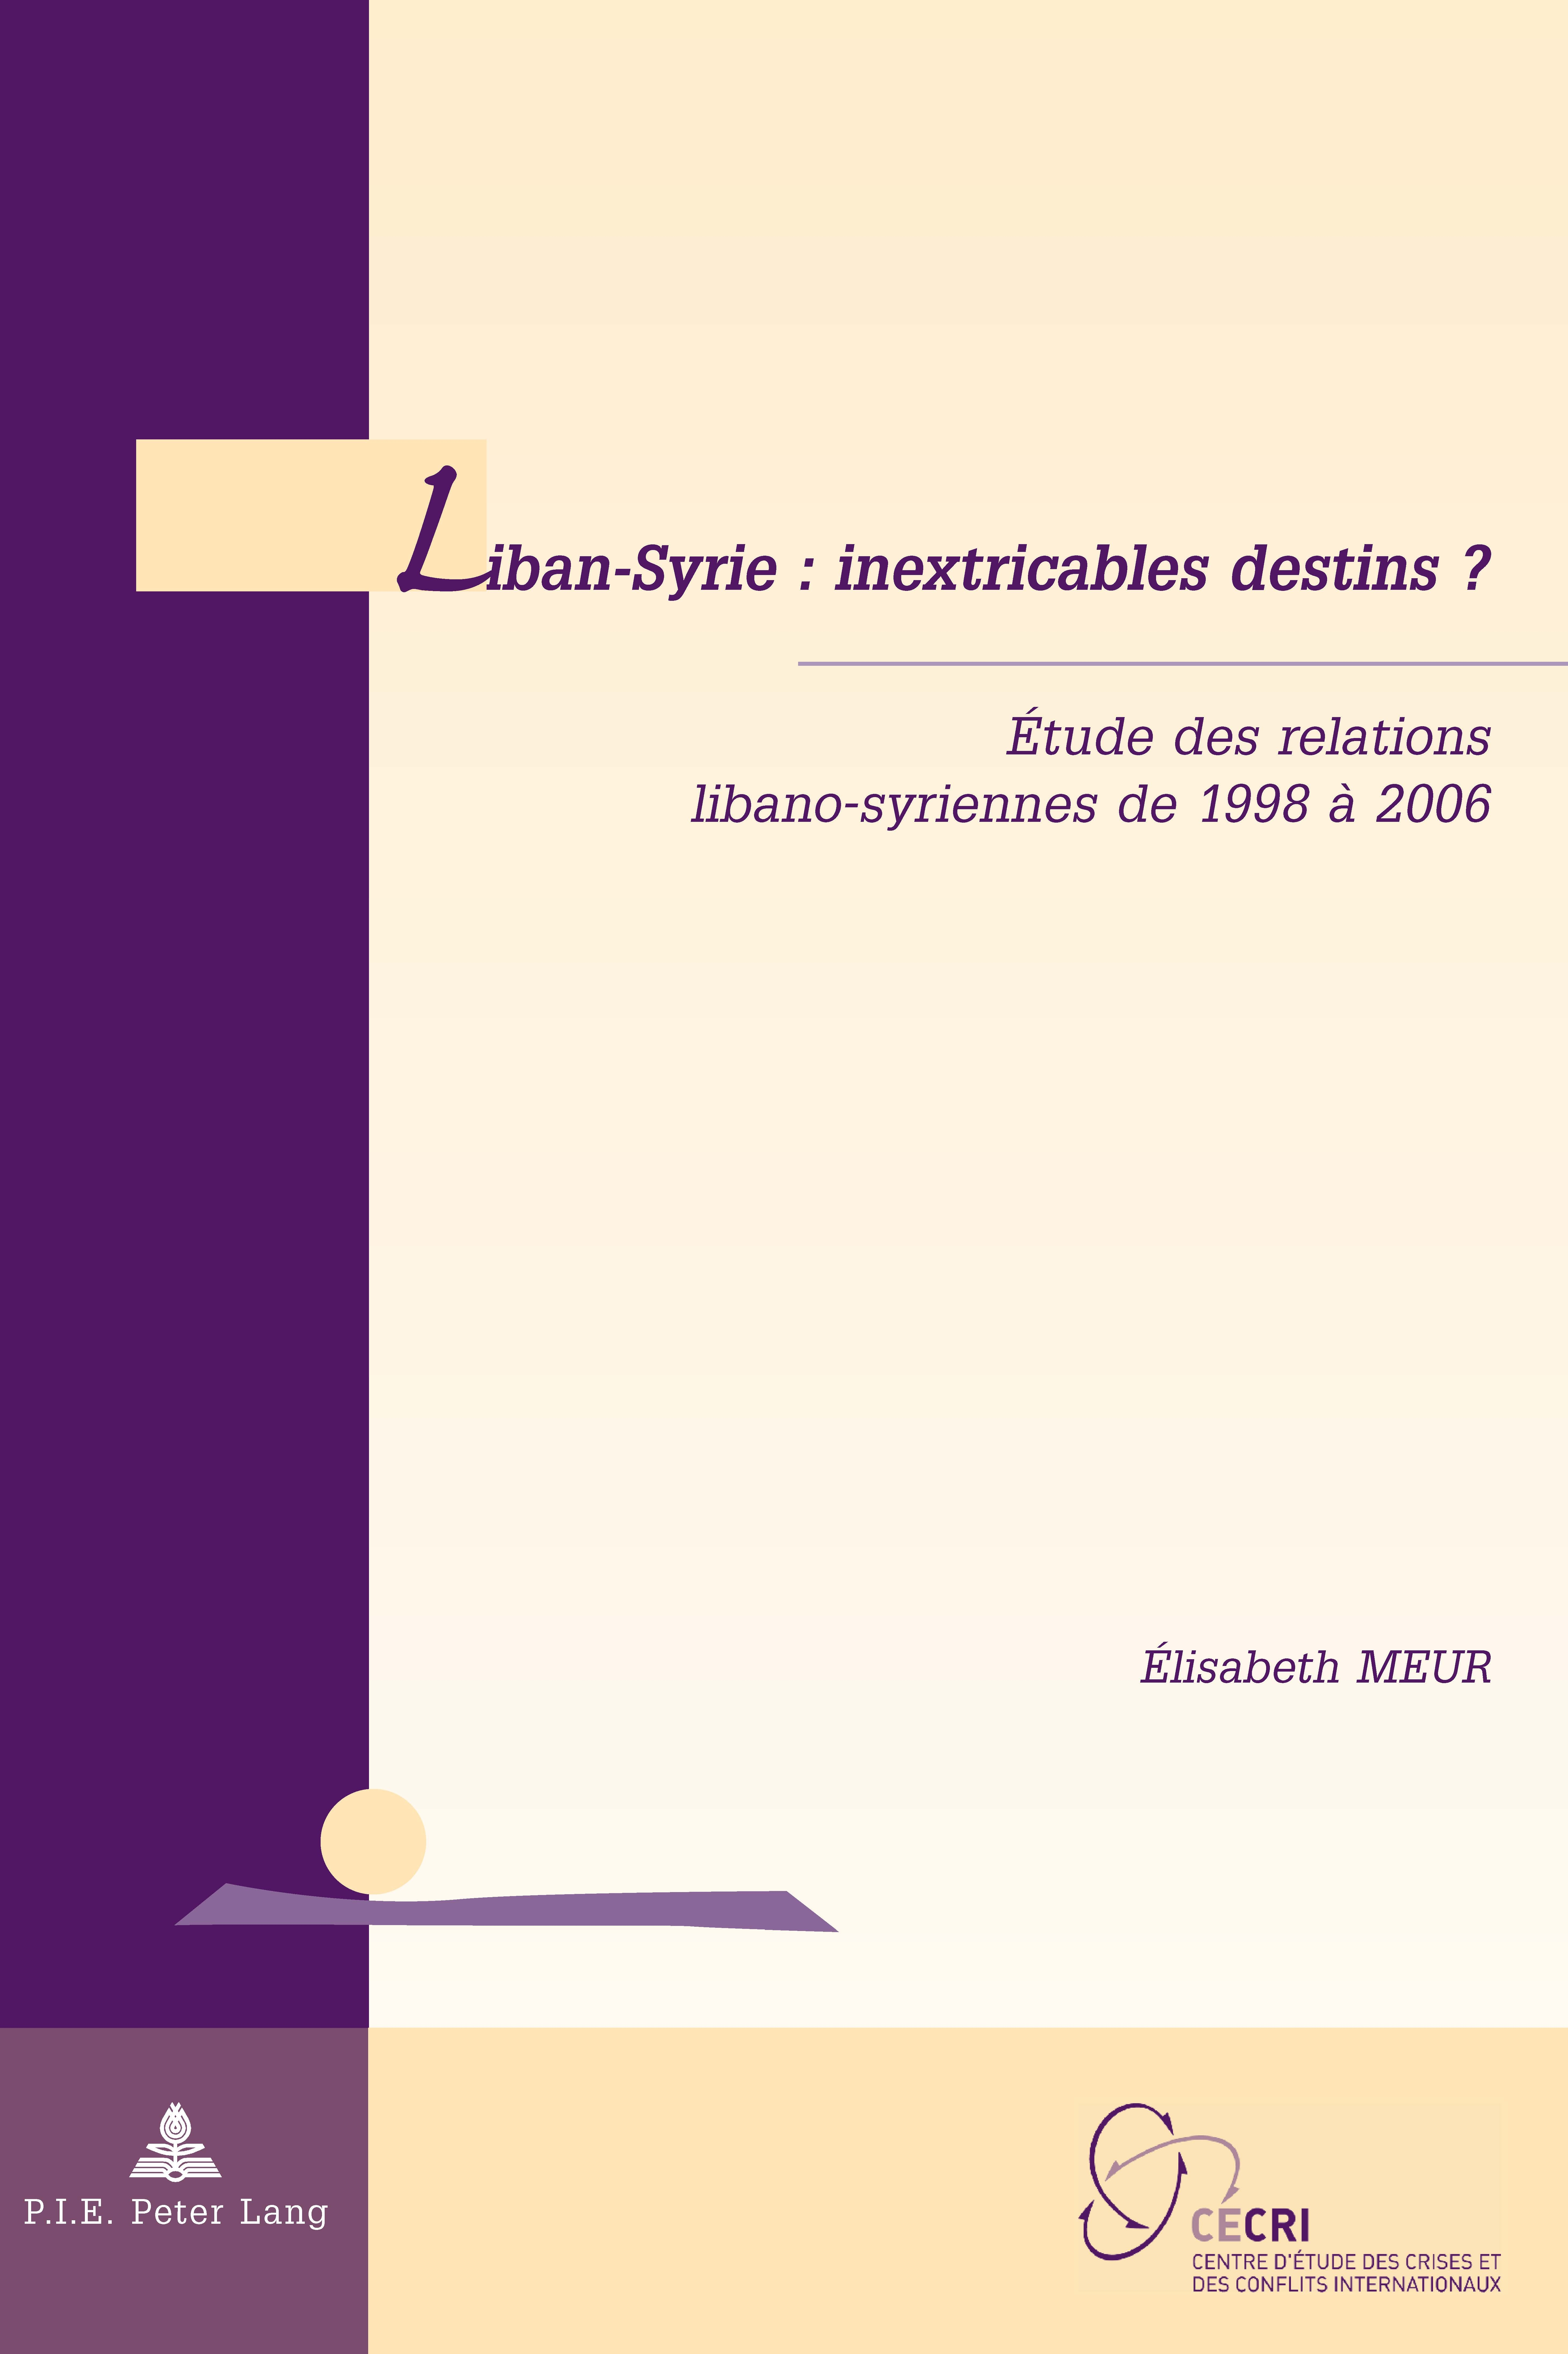 LIBAN-SYRIE: INEXTRICABLES DESTINS?